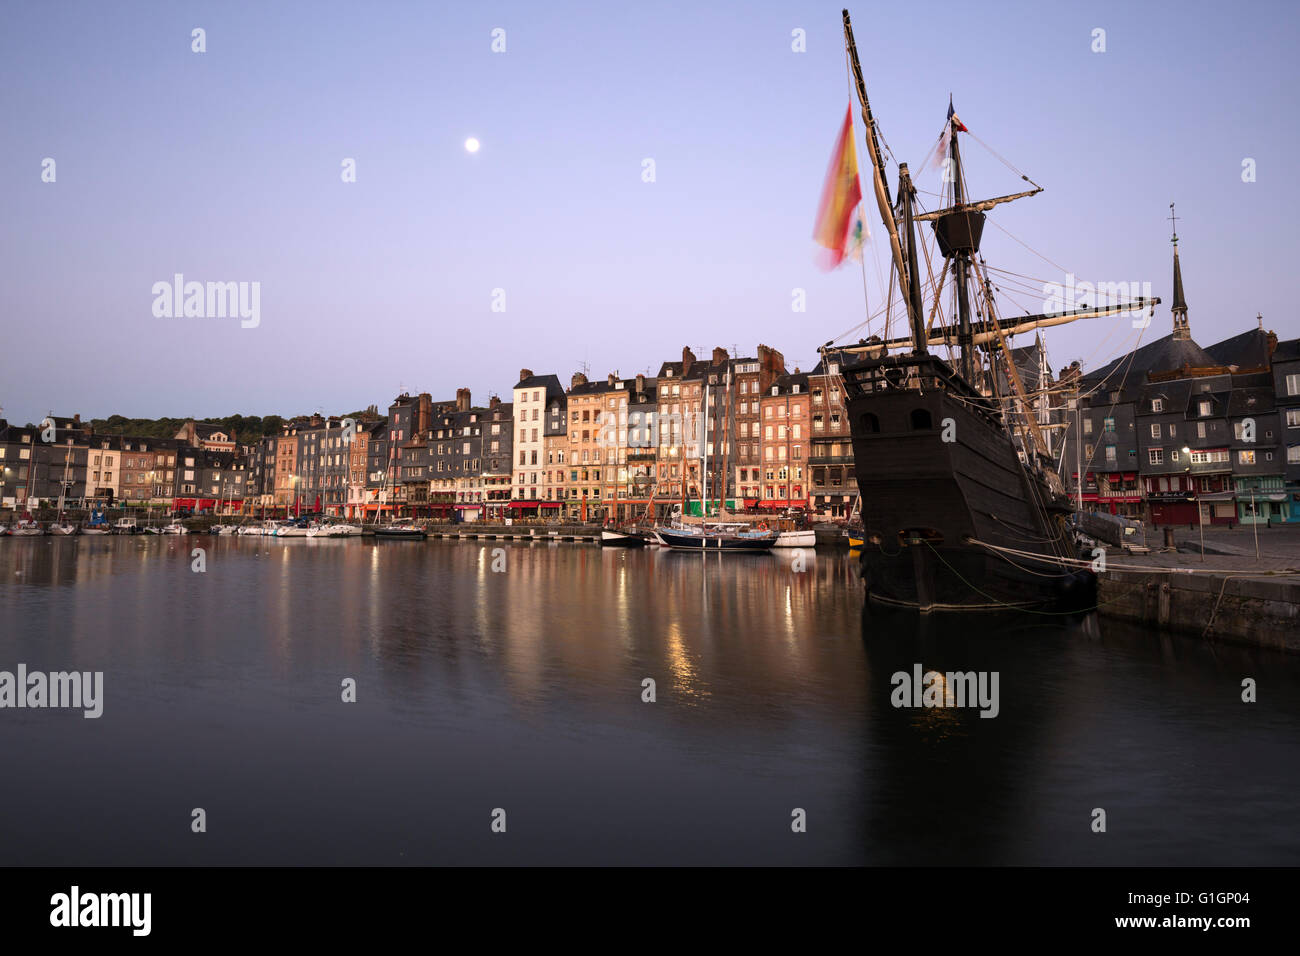 Vieux Bassin looking to Saint Catherine Quay with replica galleon at dawn, Honfleur, Normandy, France, Europe - Stock Image